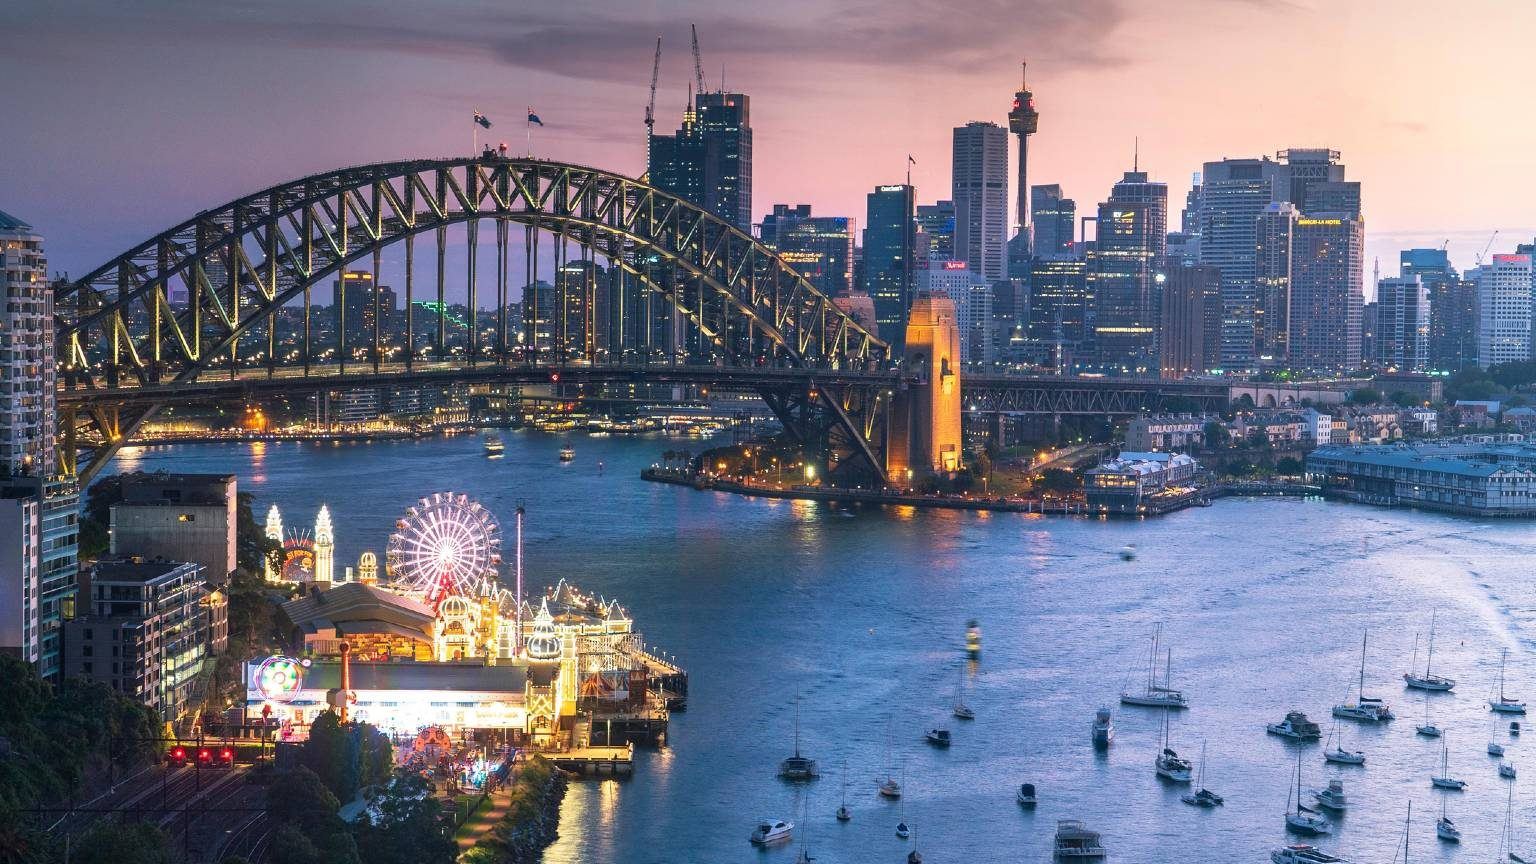 Day to night Luna park and Harbour bridge in sunset from North sydney, Sydney, Australia